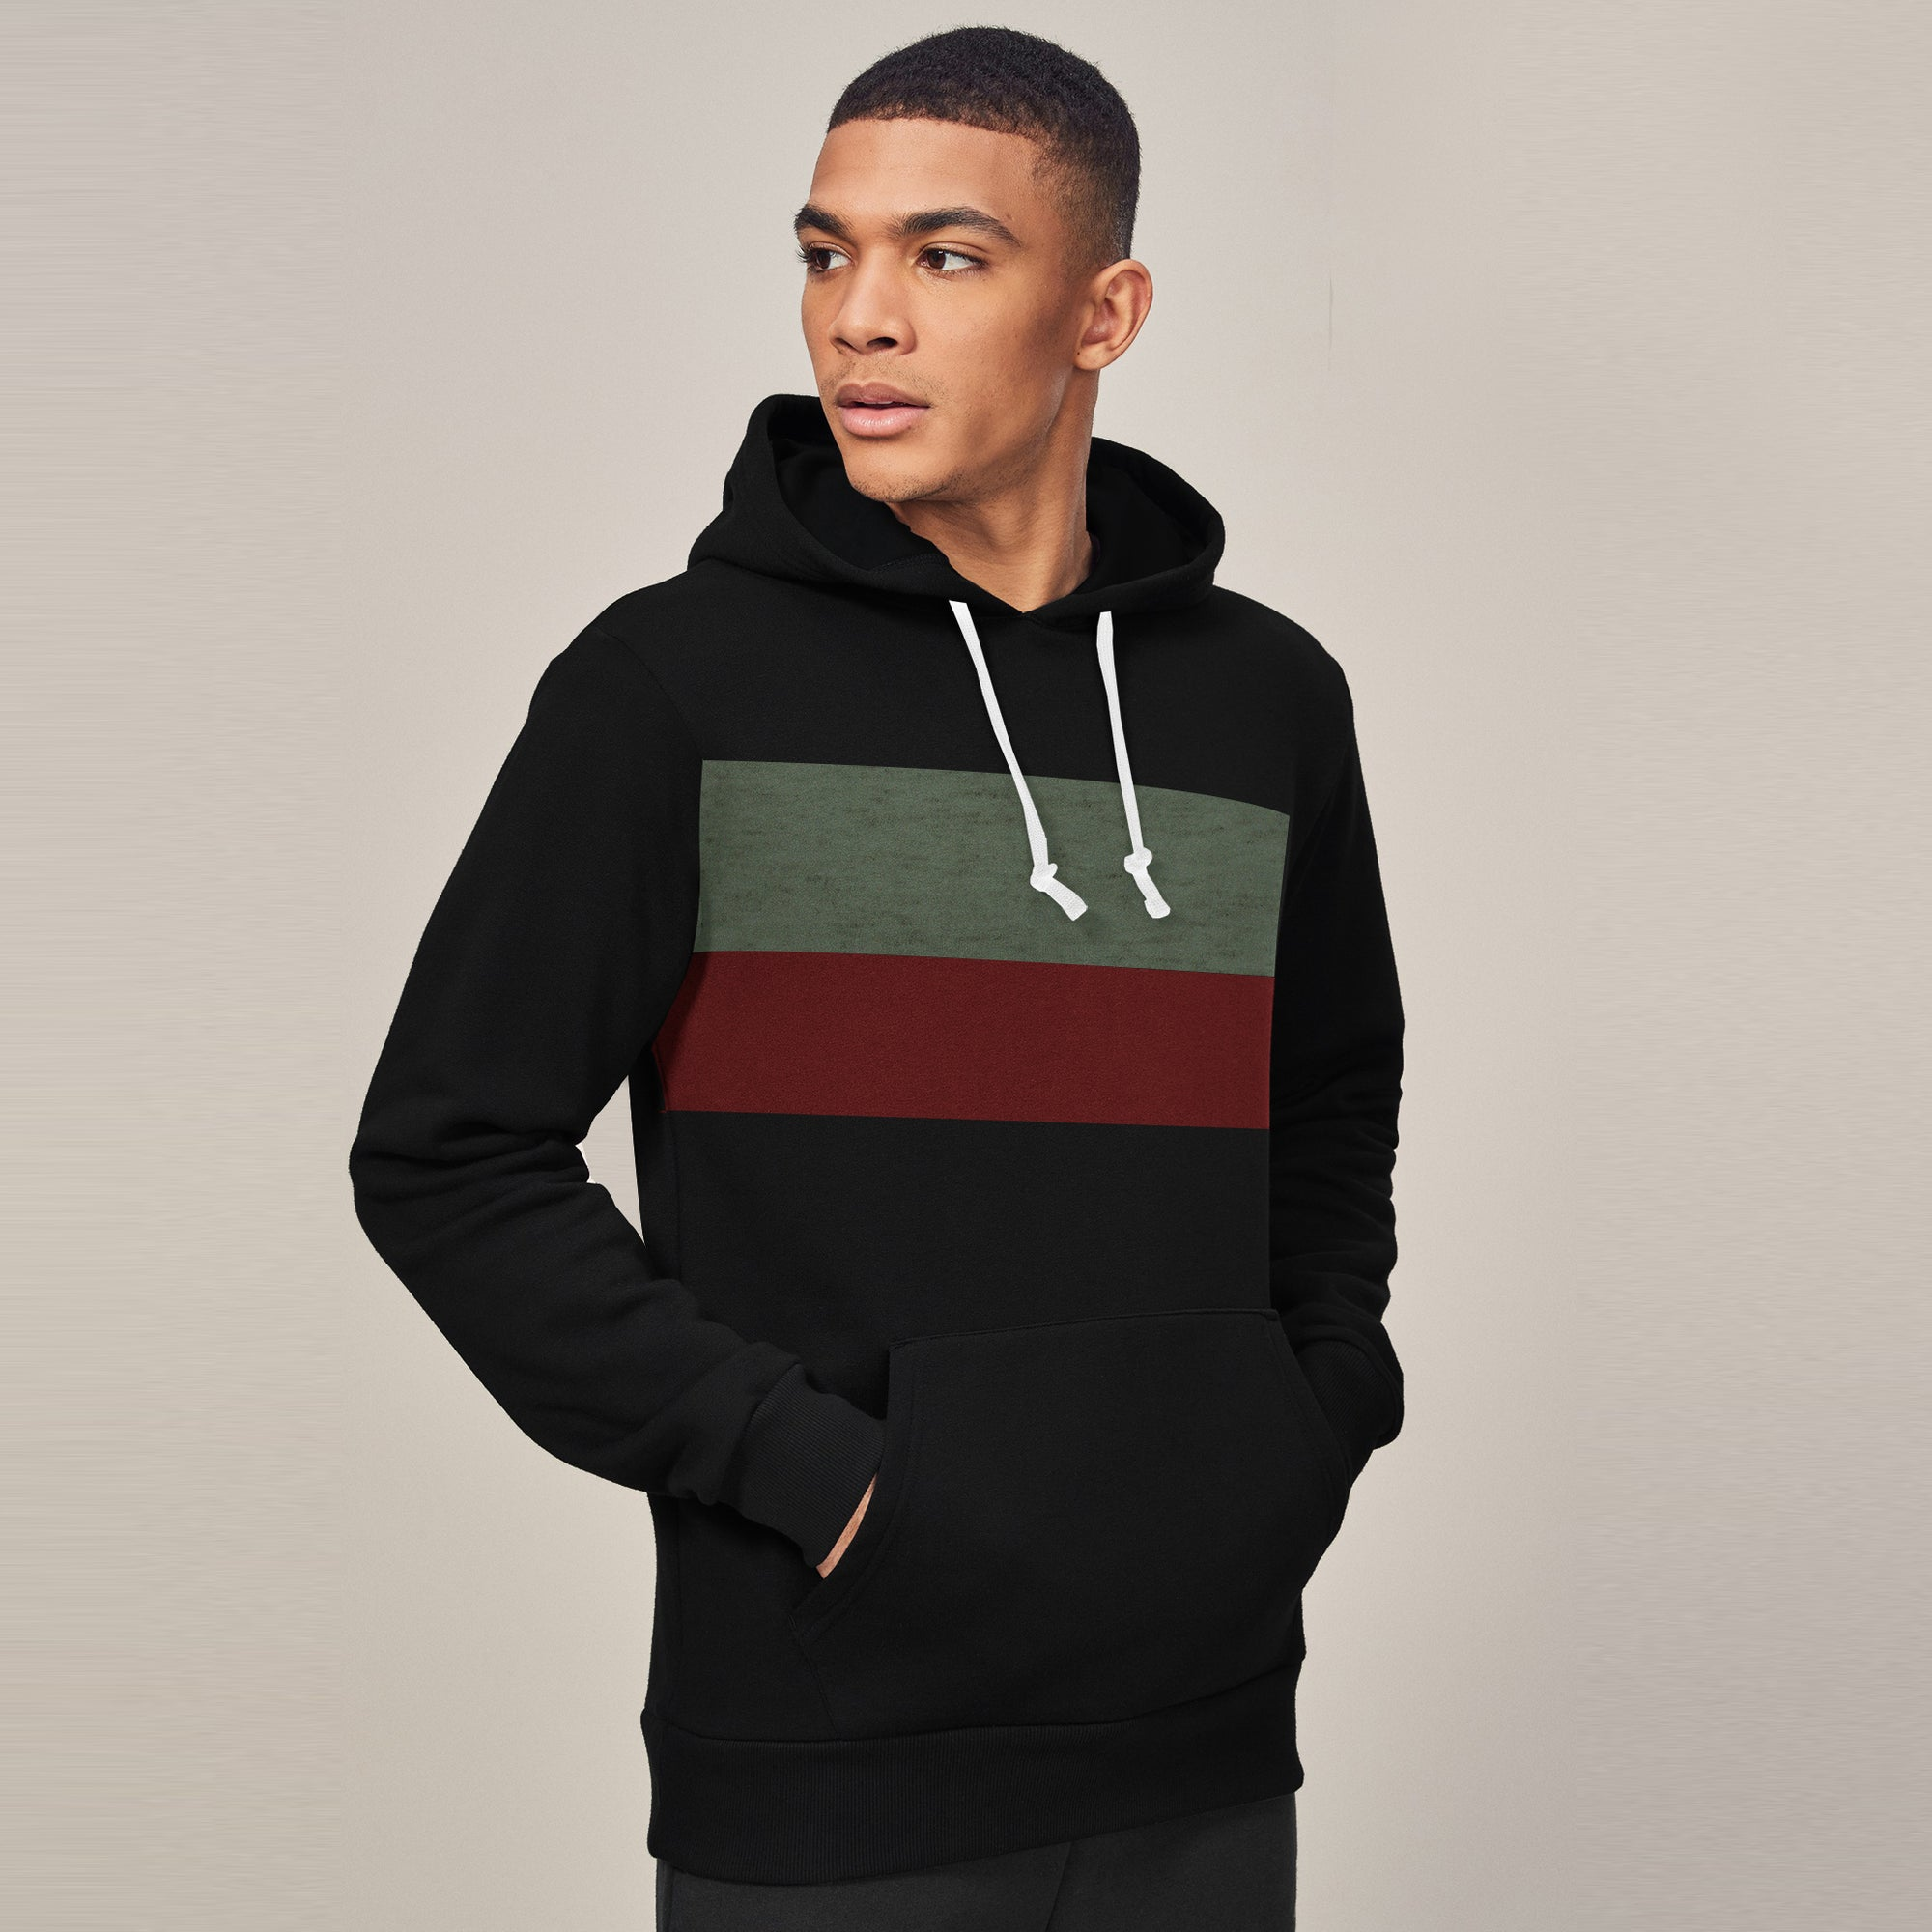 New Stylish Fleece Pullover Hoodie For Men-Black With Panels-SP1653